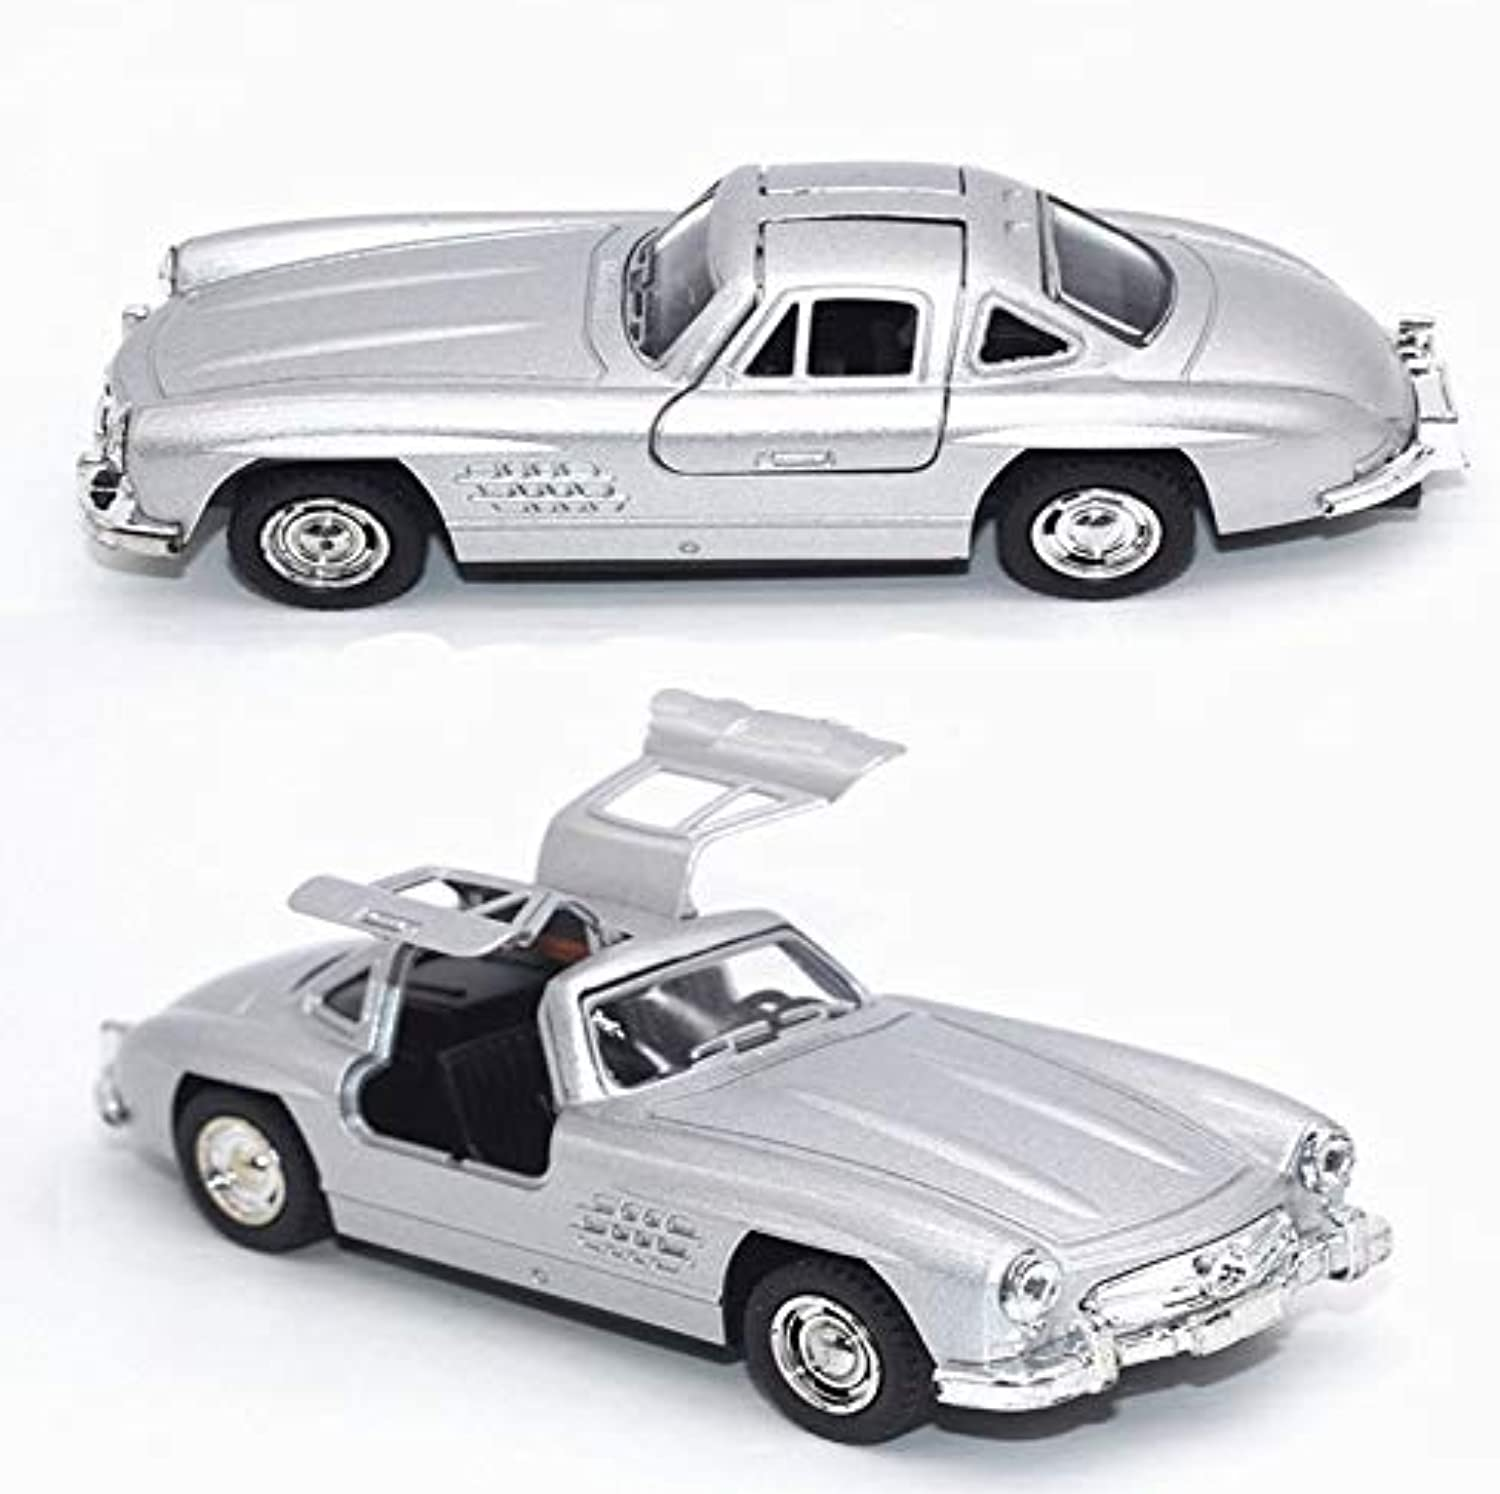 Generic 1 28 Retro Simulation Mercedes SLS Classic Car Collection Model Classic Alloy DieCasting Sound and Light Pull Back Toy Car Silver